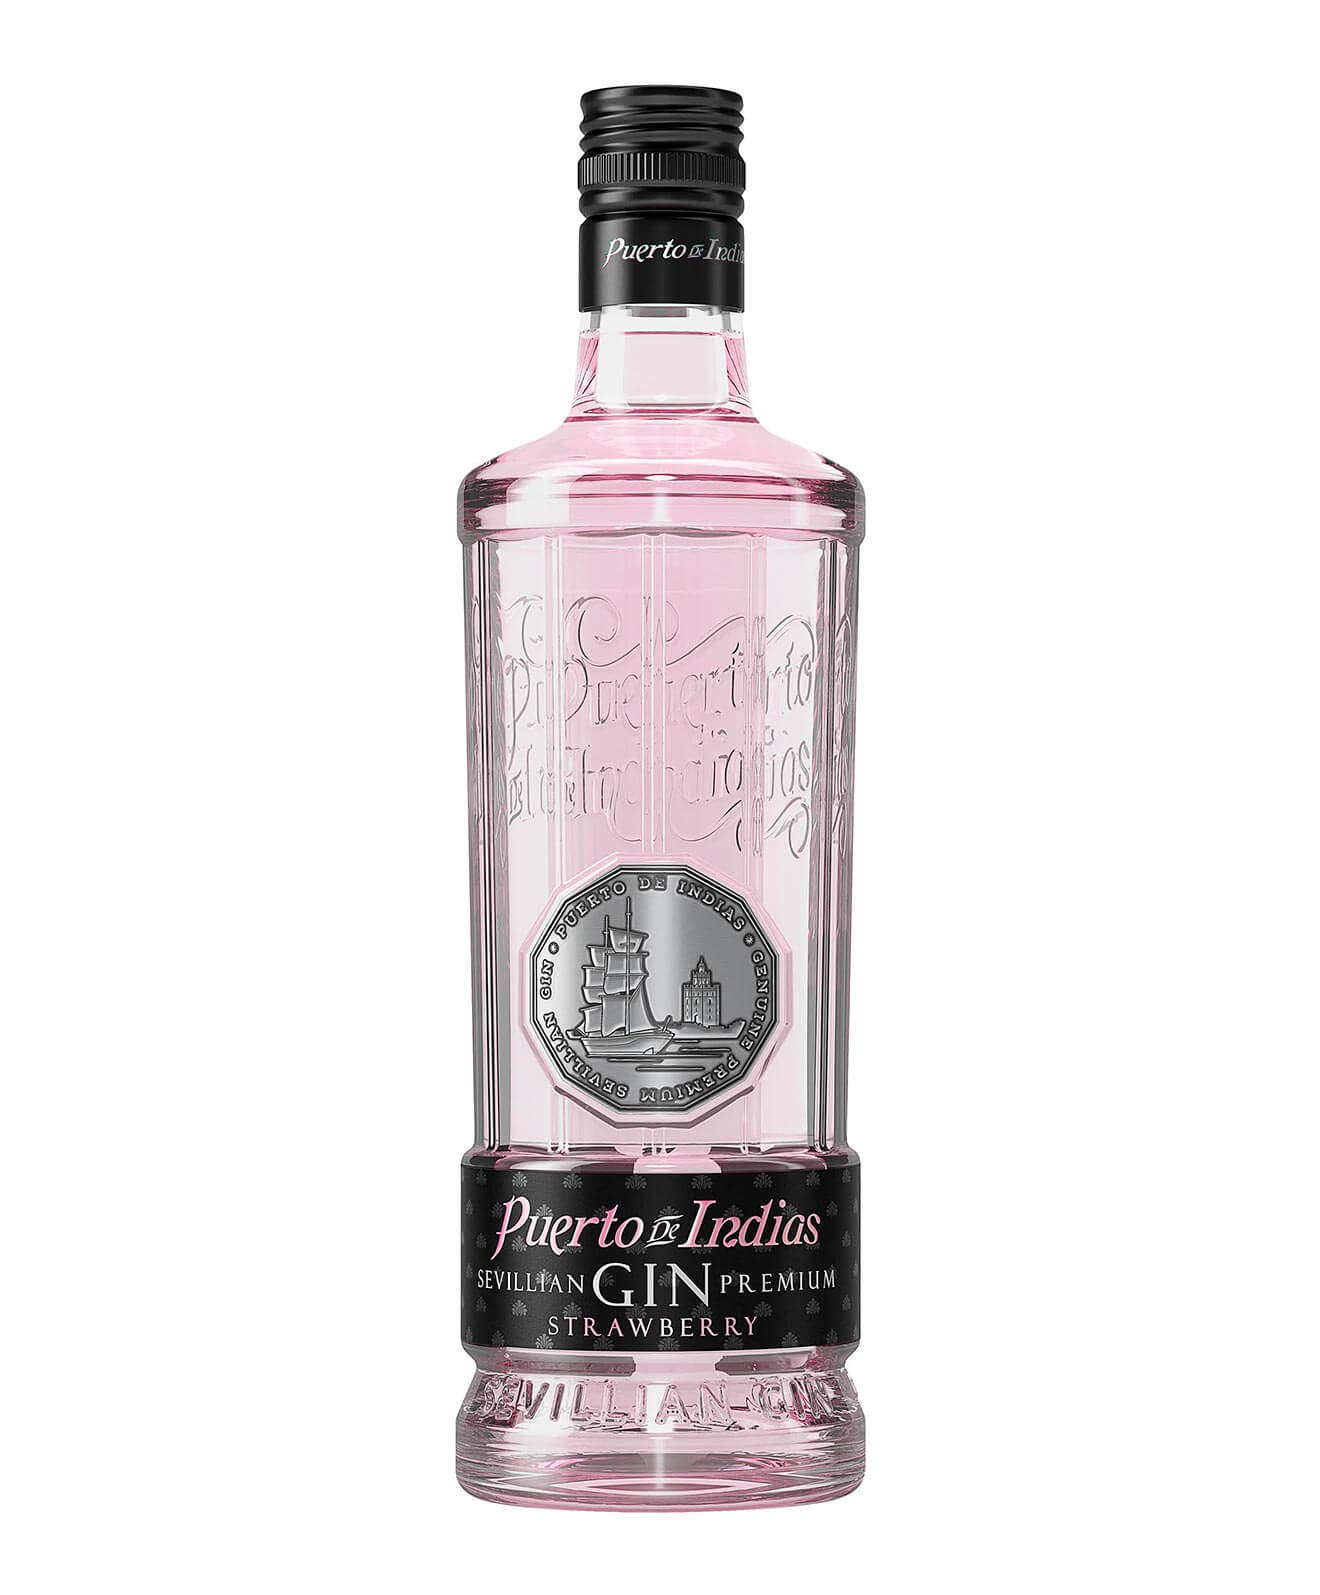 Puerto de Indias Strawberry Gin, bottle on white